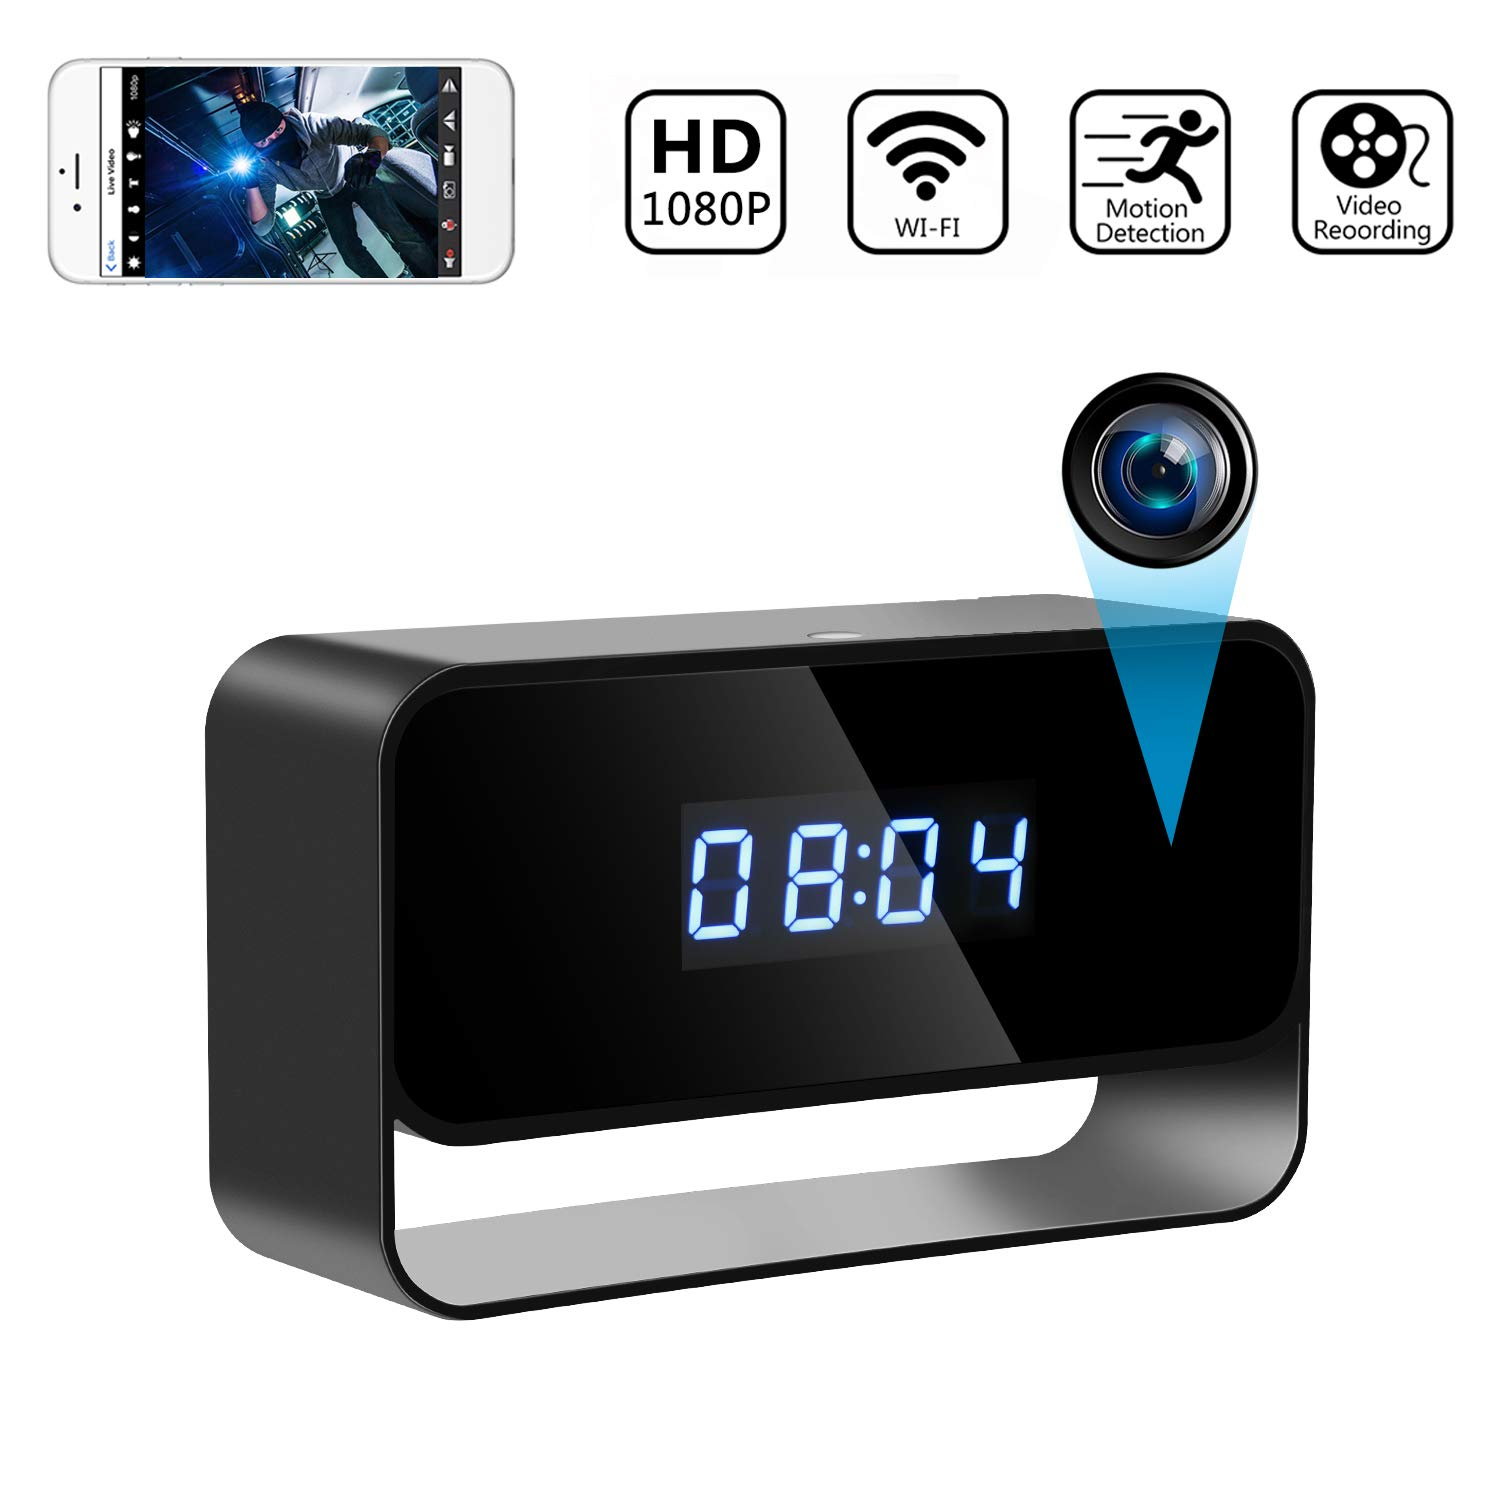 Spy Camera Wireless Hidden Cameras Clock True 1080P Covert WiFi Nanny Cam Secret Home Security Cams Strong Night Vision Video Recorder Remote View via iPhone Android APP